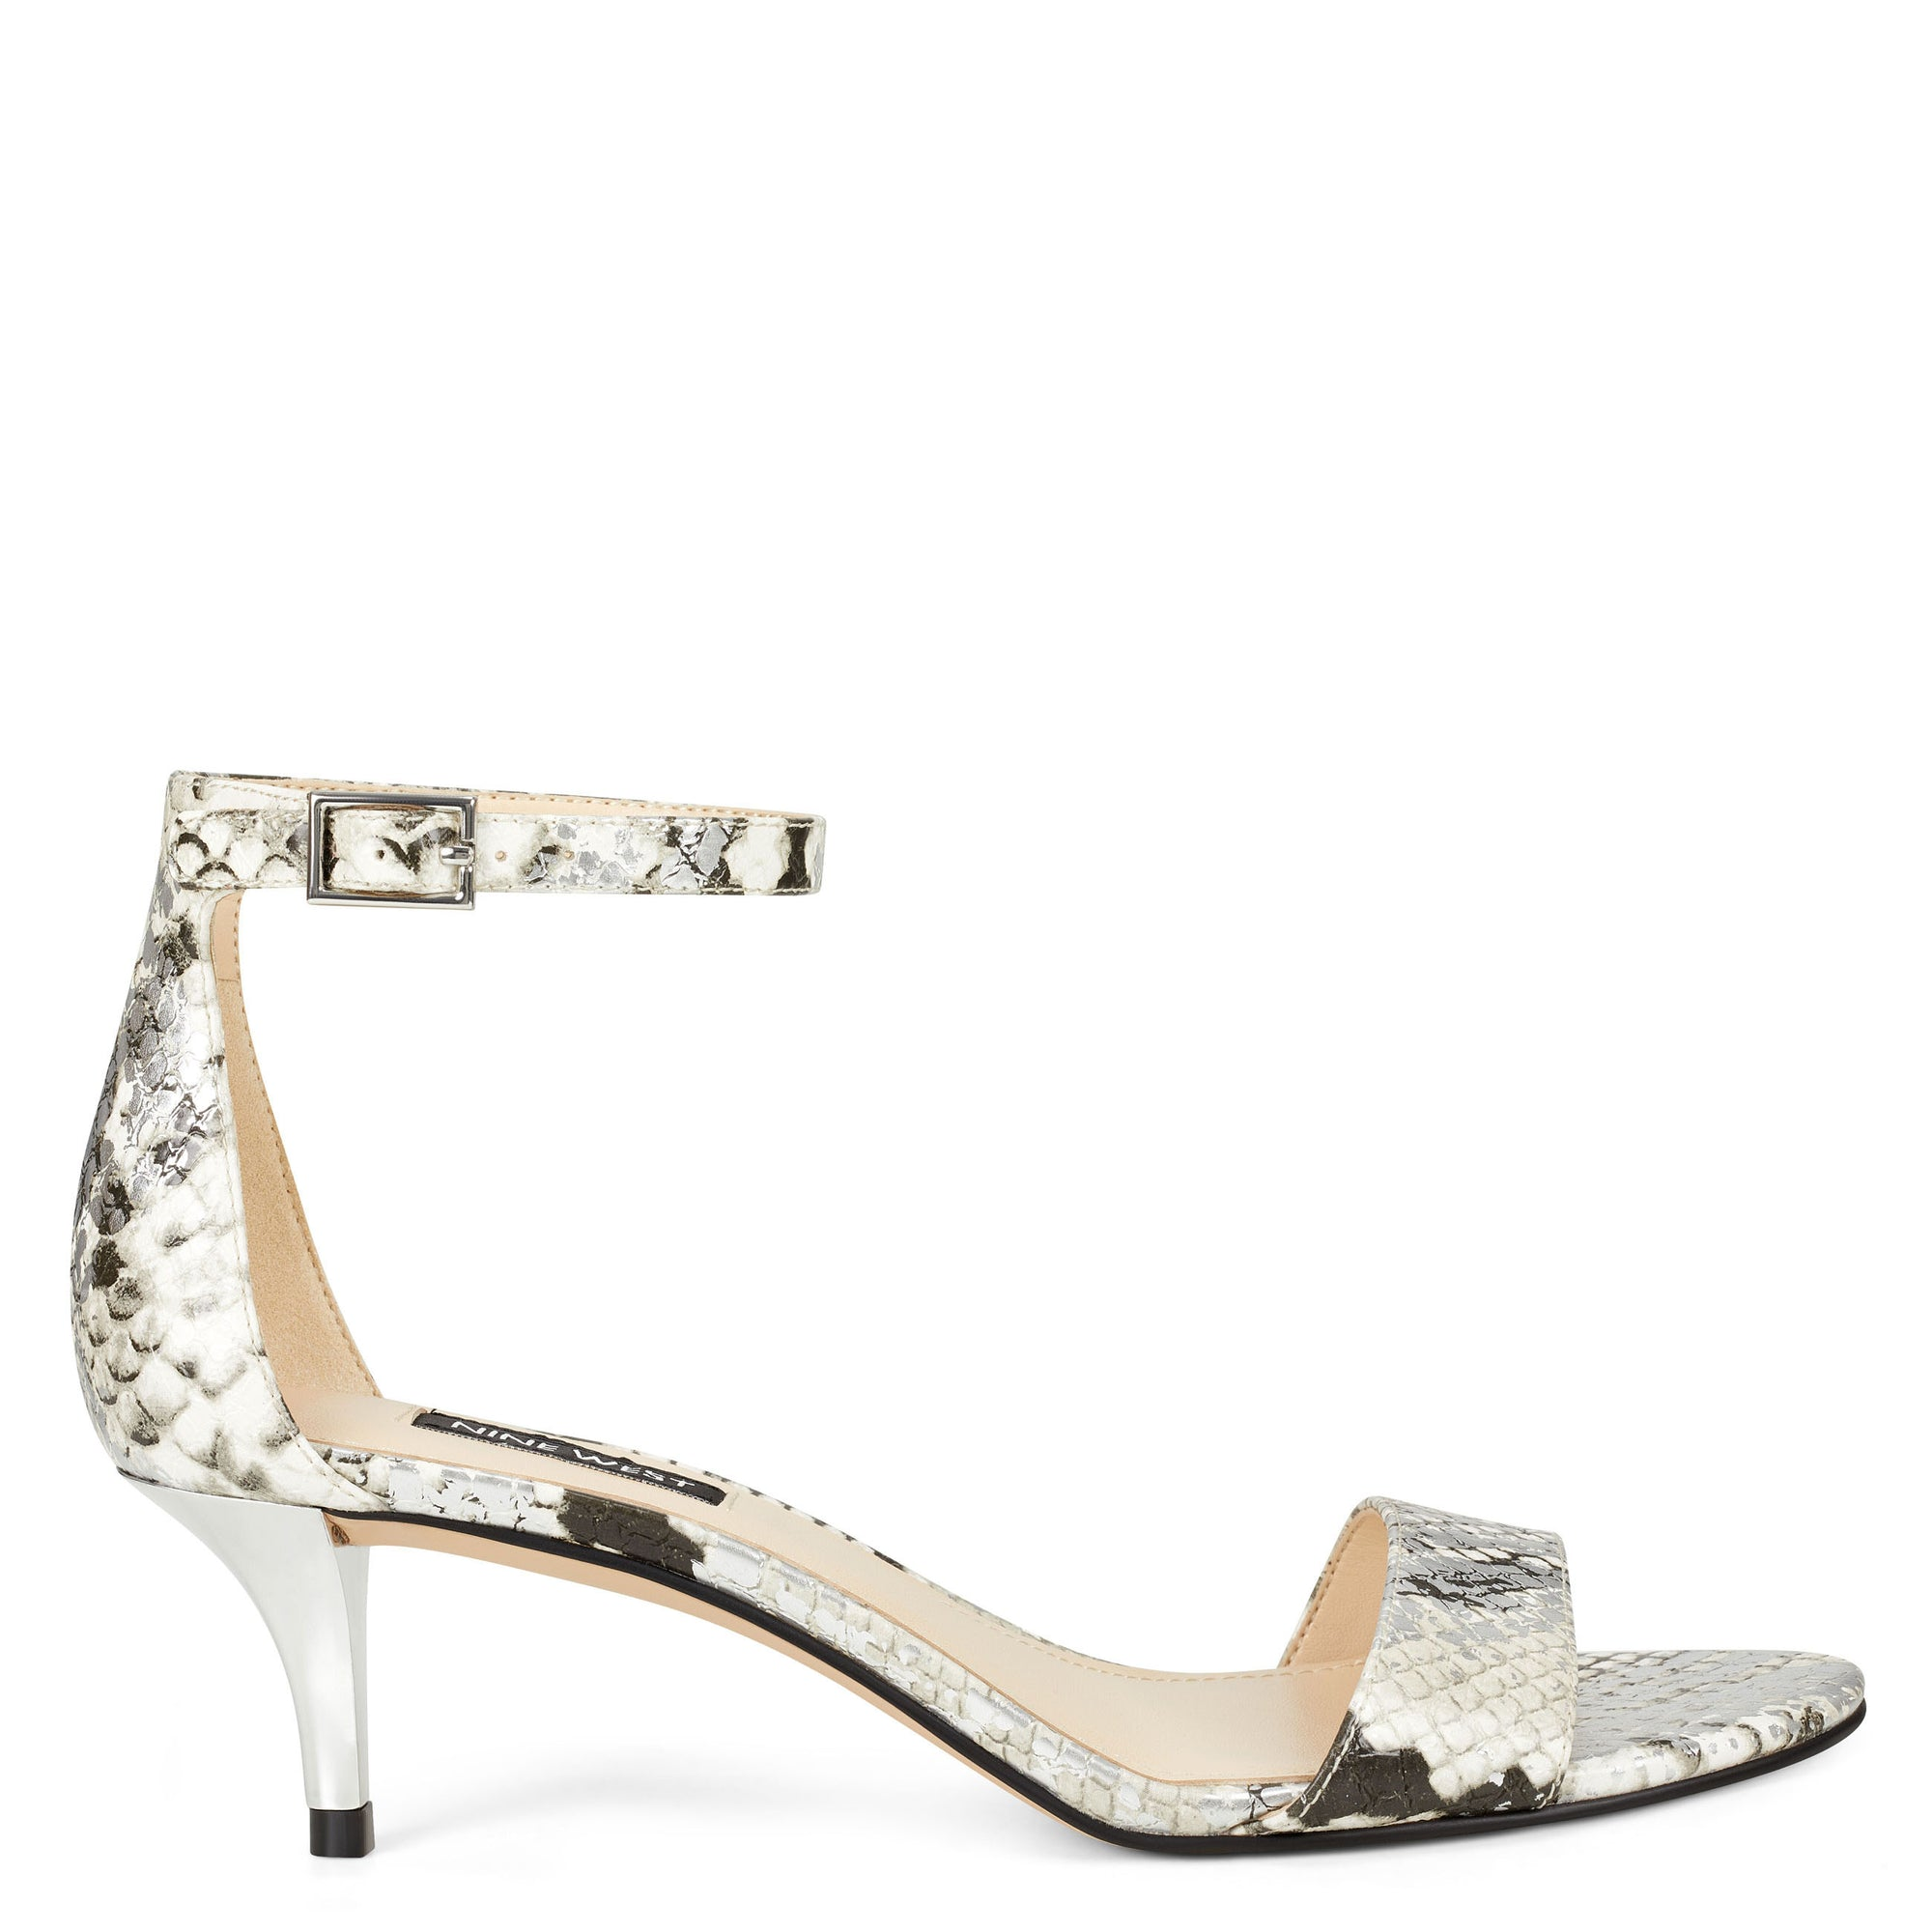 leisa-ankle-strap-sandals-in-metallic-painted-snake-print